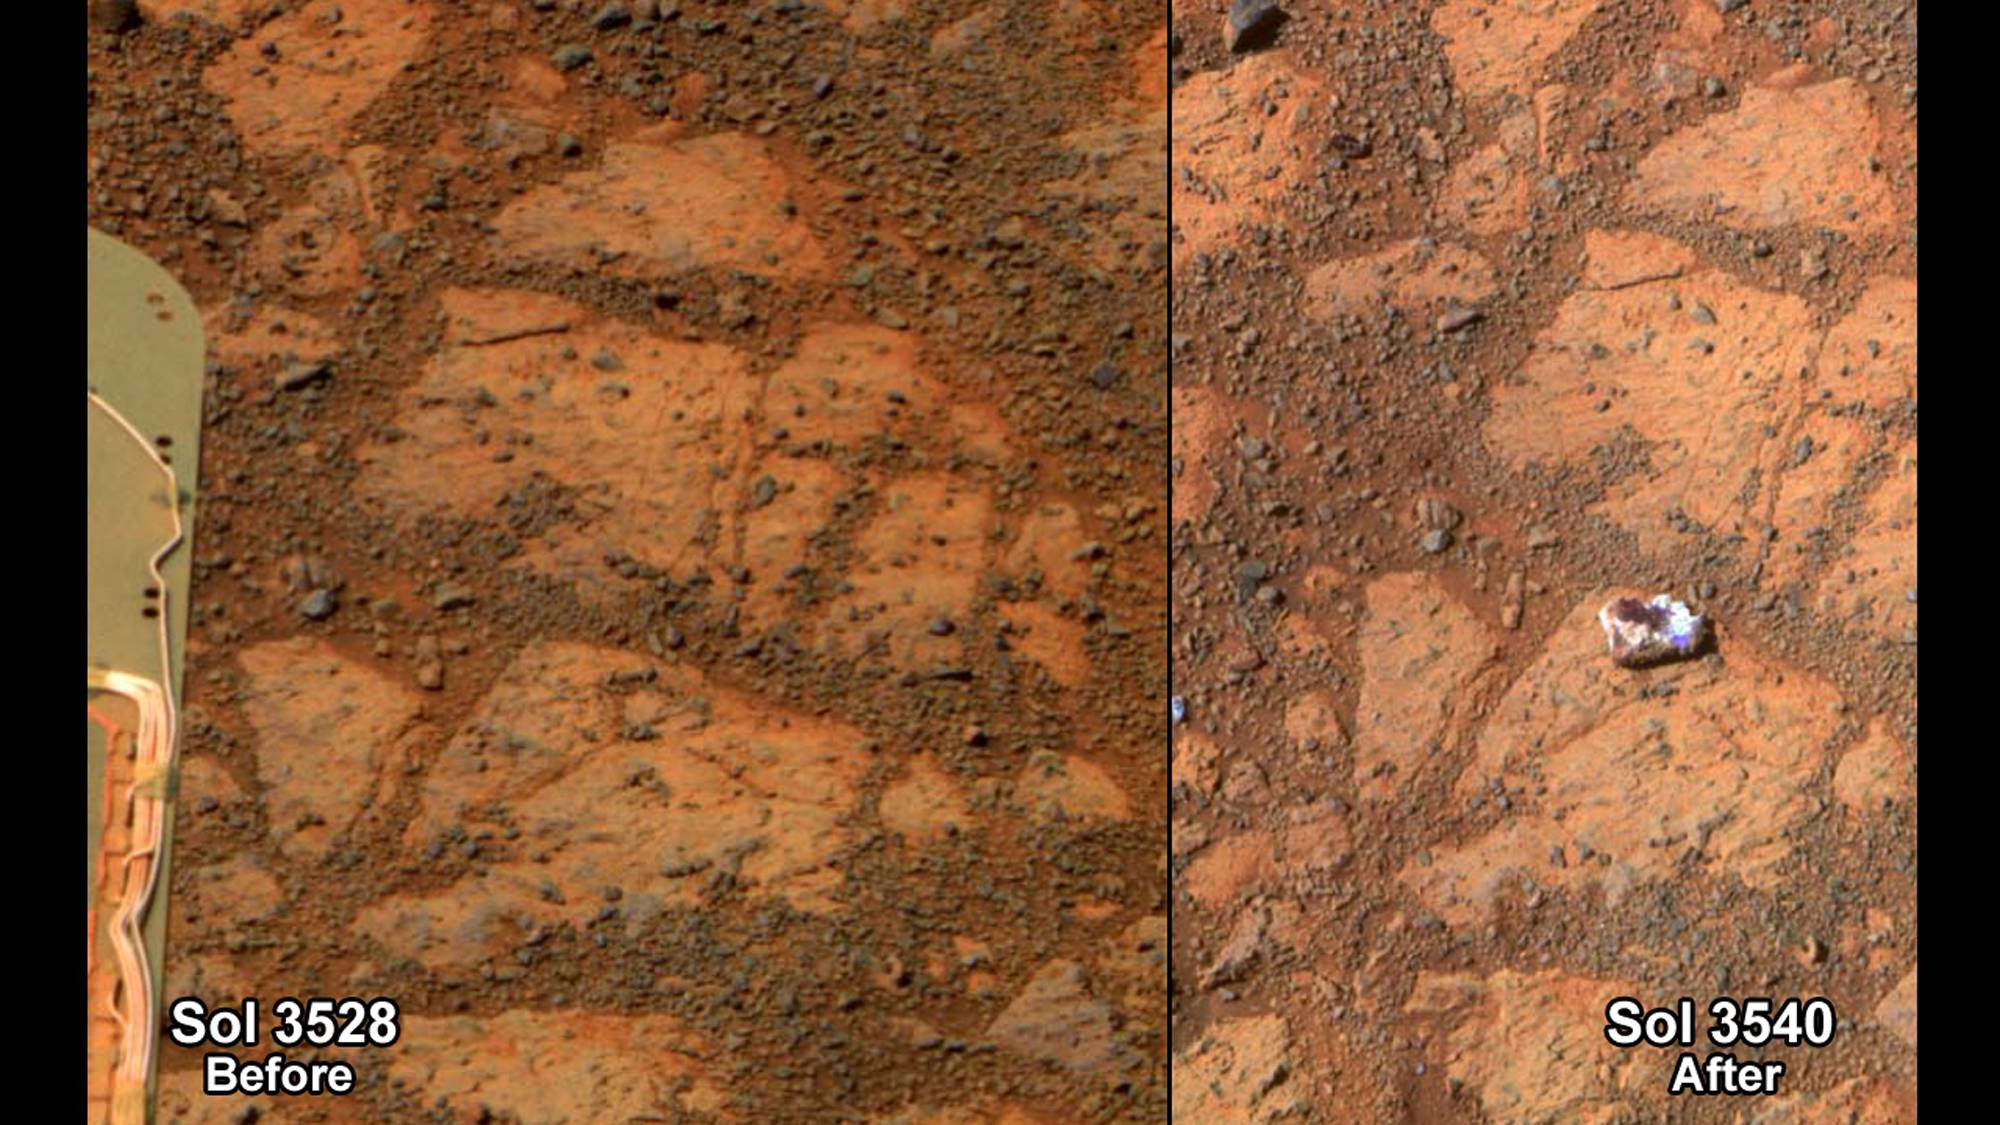 This composite image provided by NASA shows before and-after images taken by the Opportunity rover on Mars of a patch of ground taken on Dec. 26, 2013, left, and one of the same area on Jan. 8, 2014, that shows a rock shaped like a jelly doughnut. NASA on Friday said the rover Opportunity likely kicked up the rock into its field of view. Opportunity landed on Mars in 2004 and continues to explore.